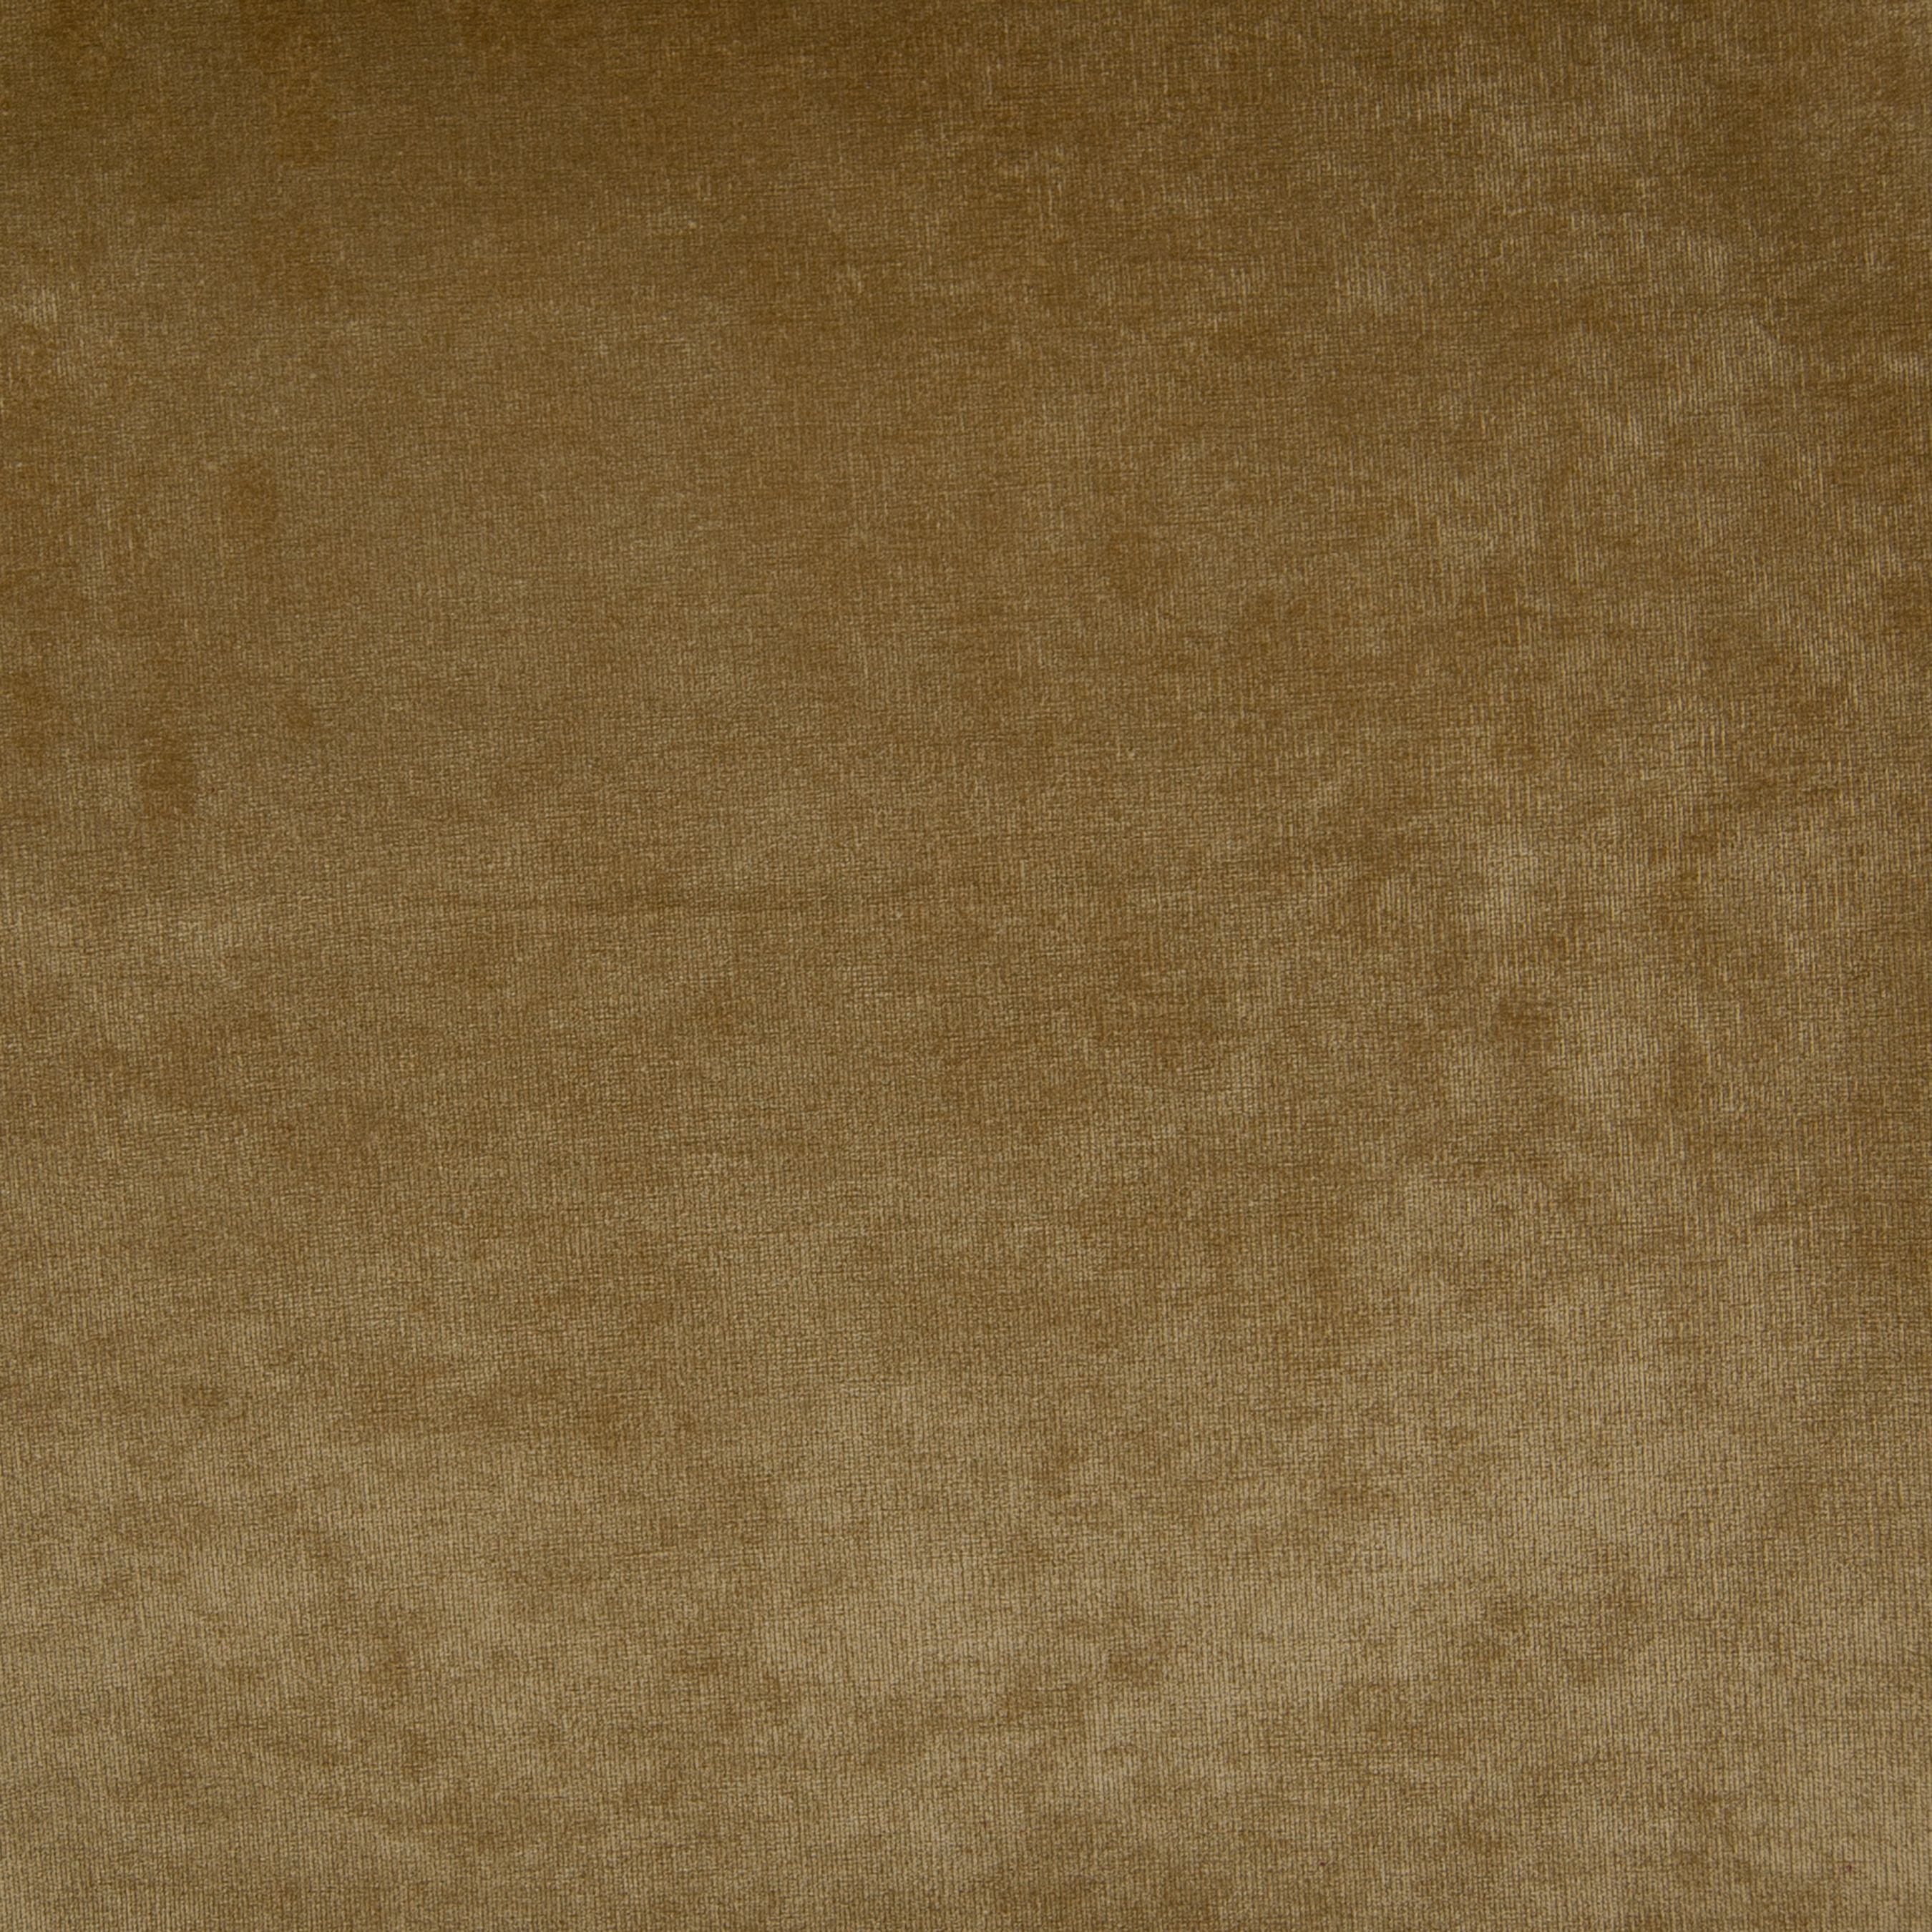 B9900 Light Brown 2018 Value Upholstery Upholstery Velvet